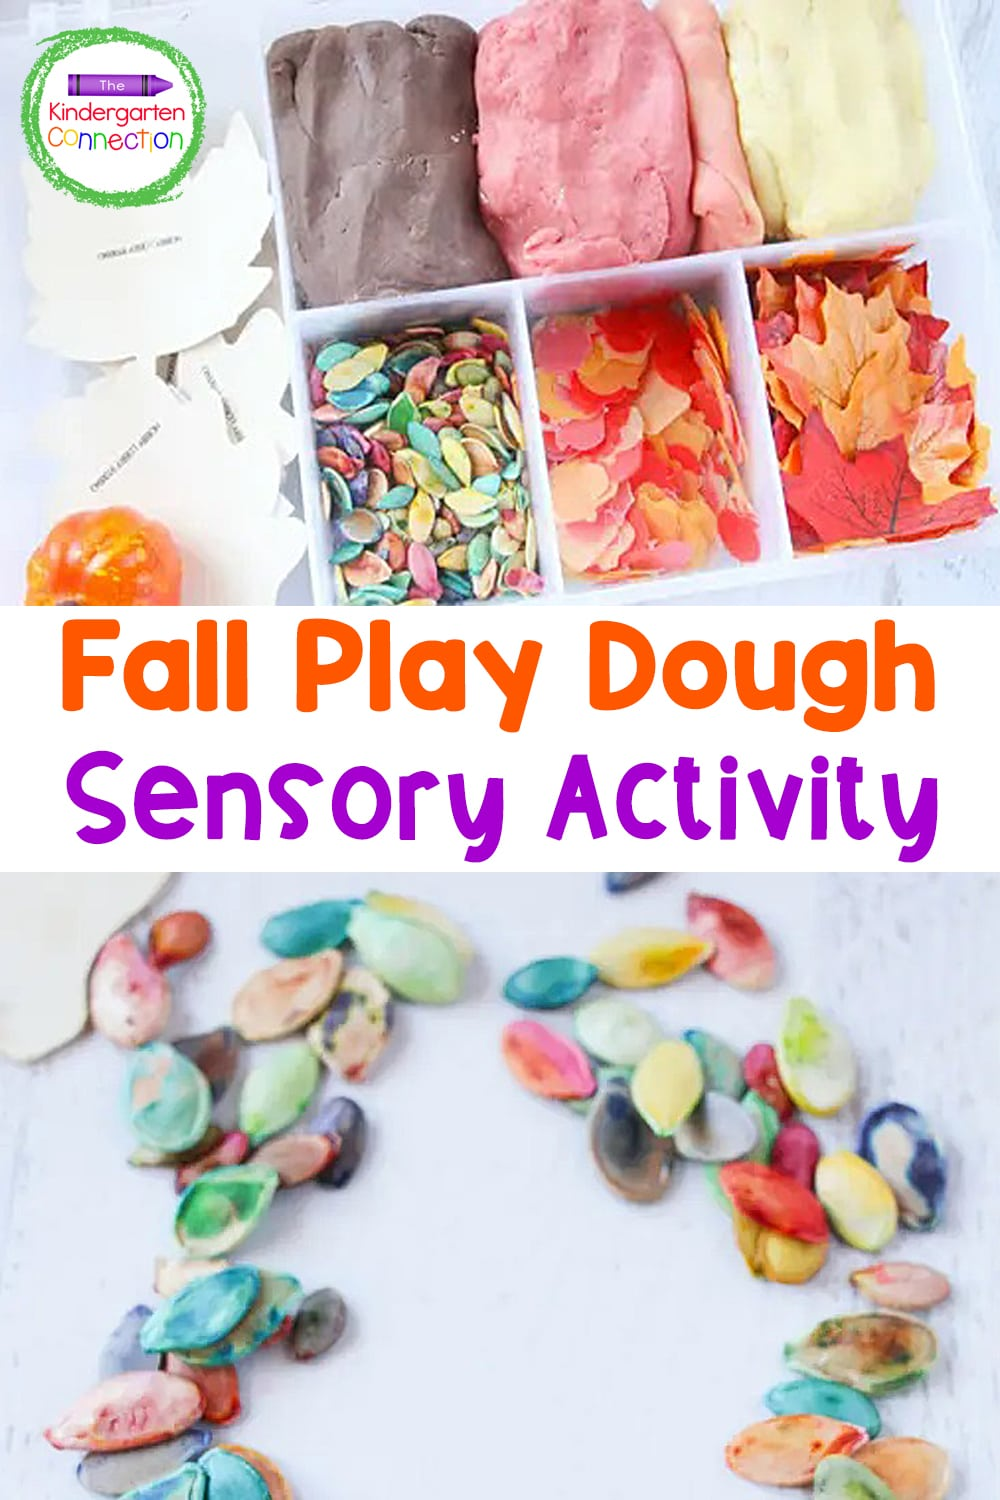 This Fall Play Dough Kit is an awesome activity to encourage classroom sensory play. So many fun ways for kids to be creative!